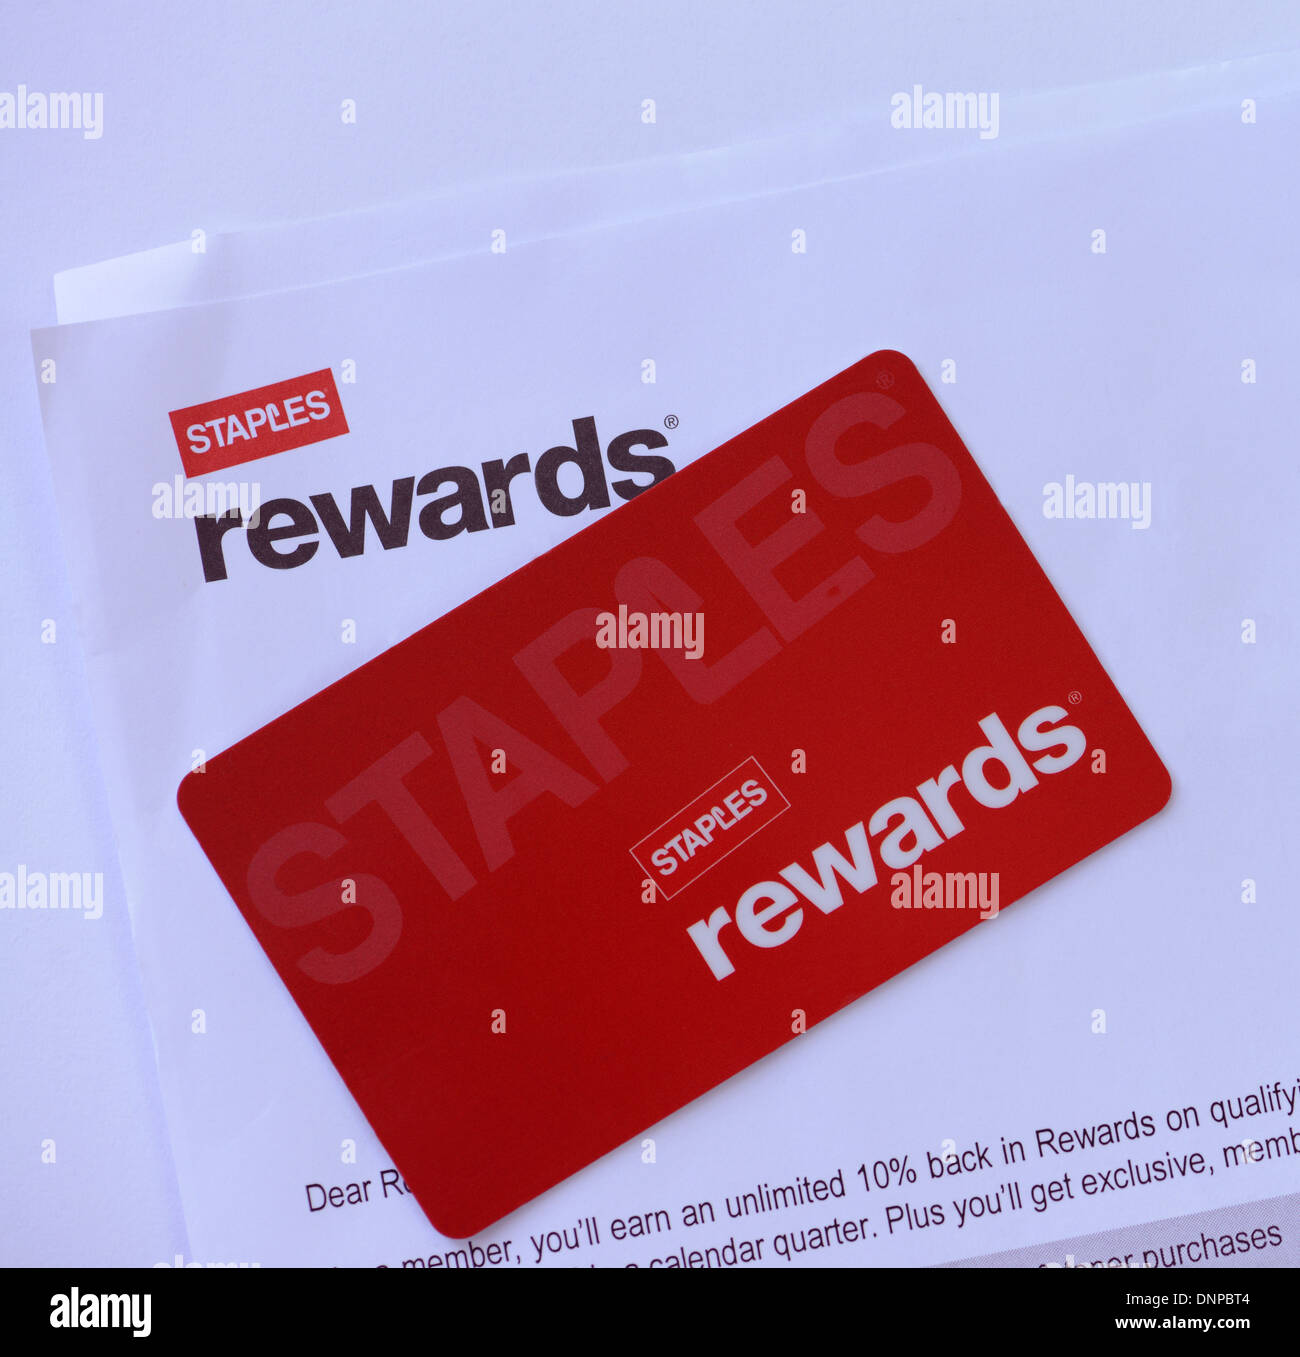 Staples reward card and Introductory letter - Stock Image